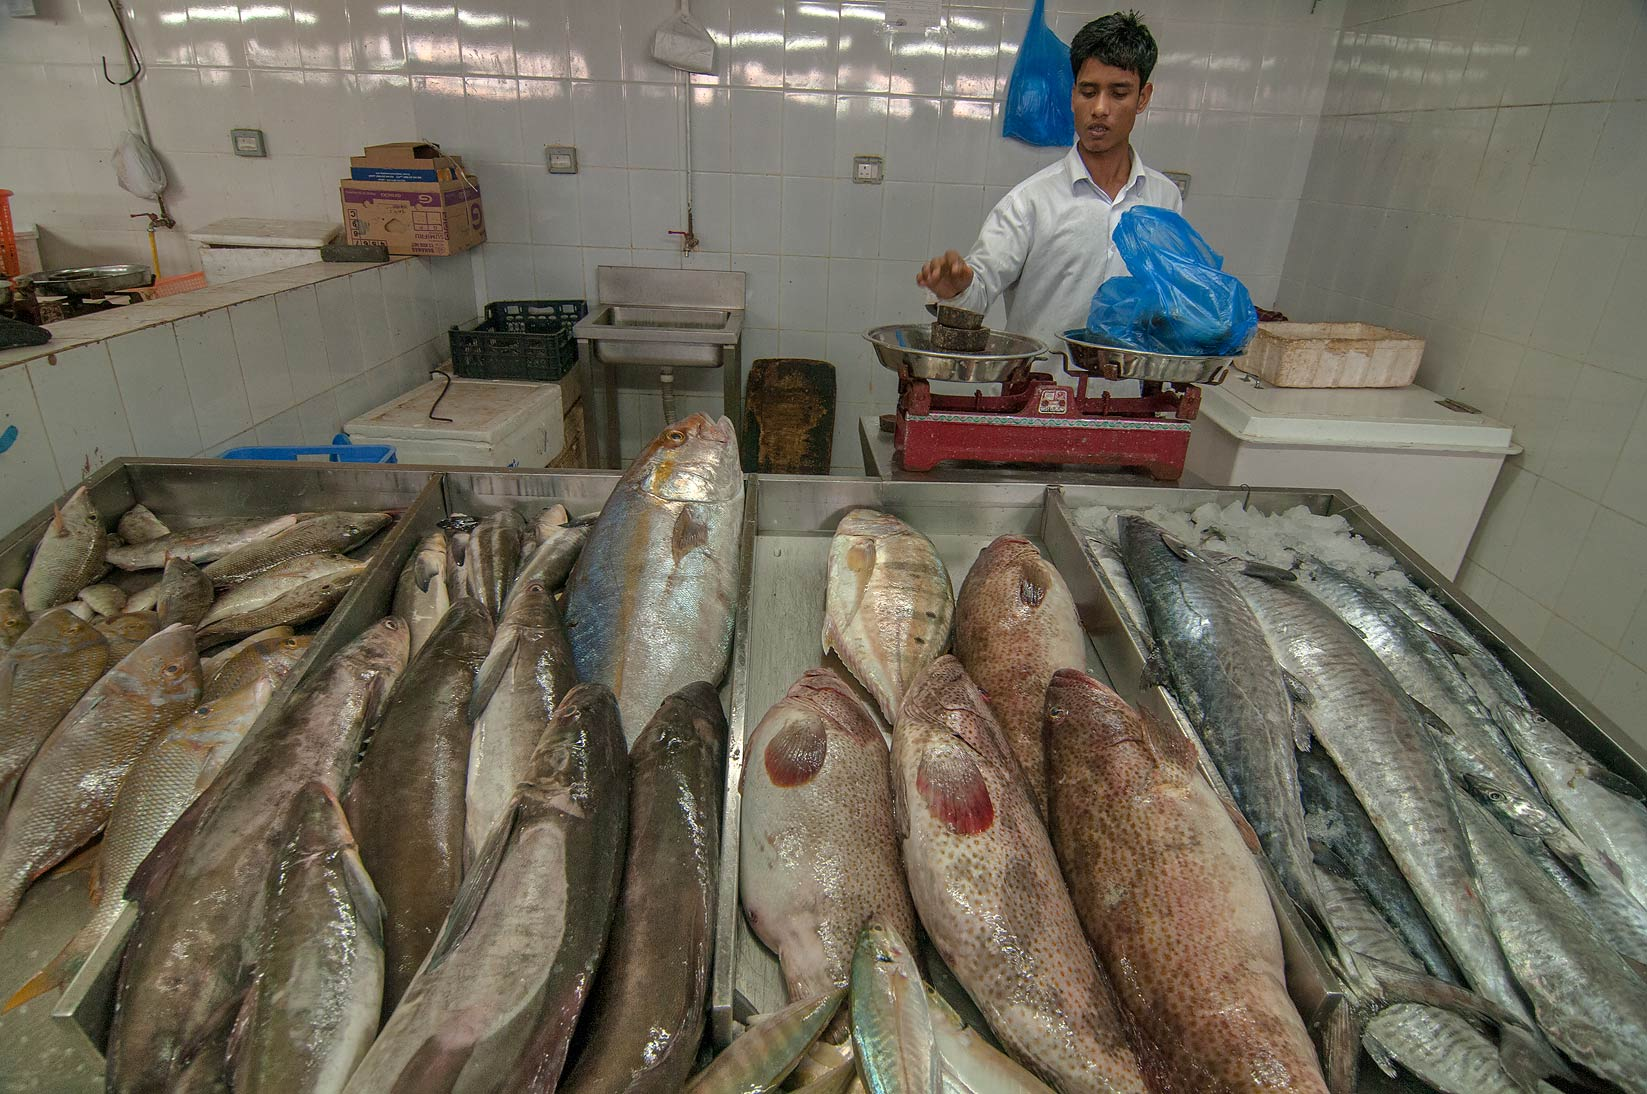 Weighting fish in Wholesale Fish Market. Doha, Qatar